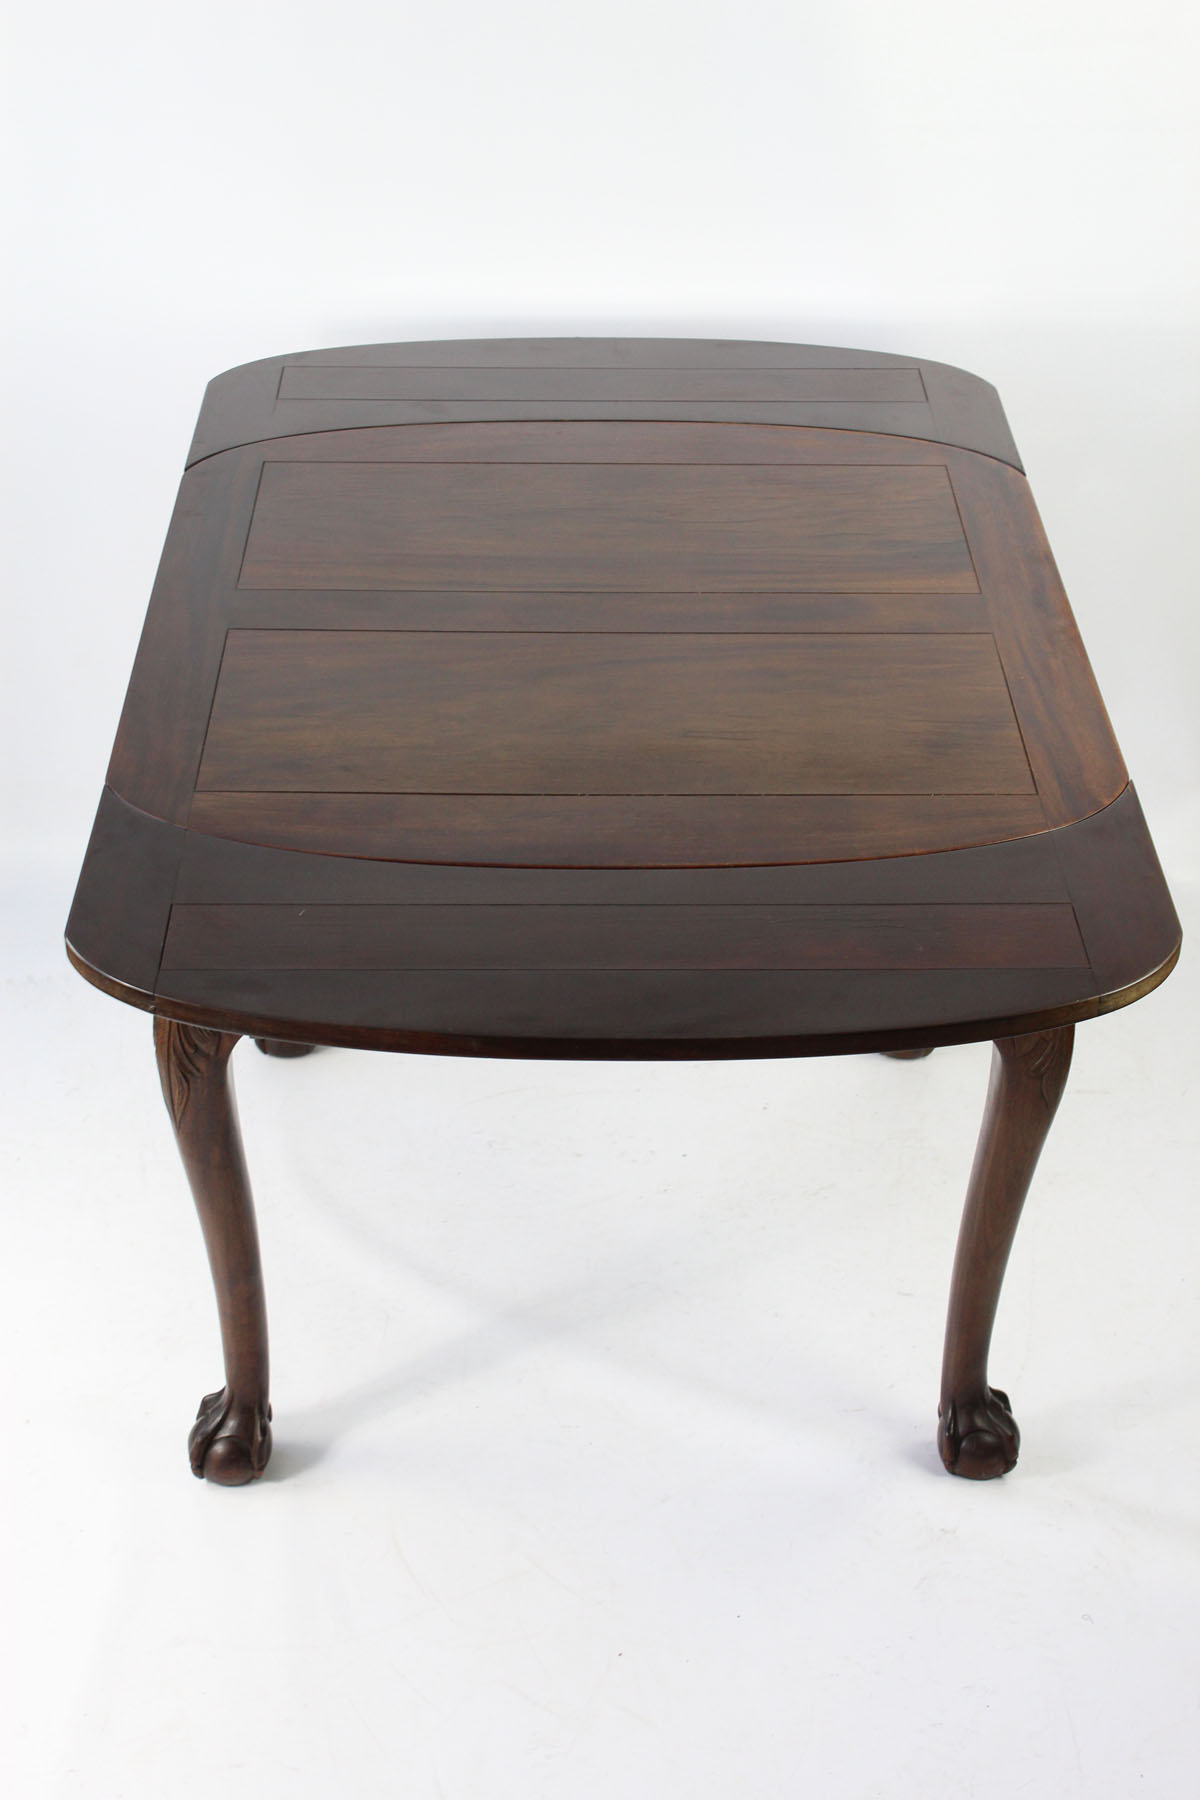 Extending Draw Leaf Dining Table Circa 1920s